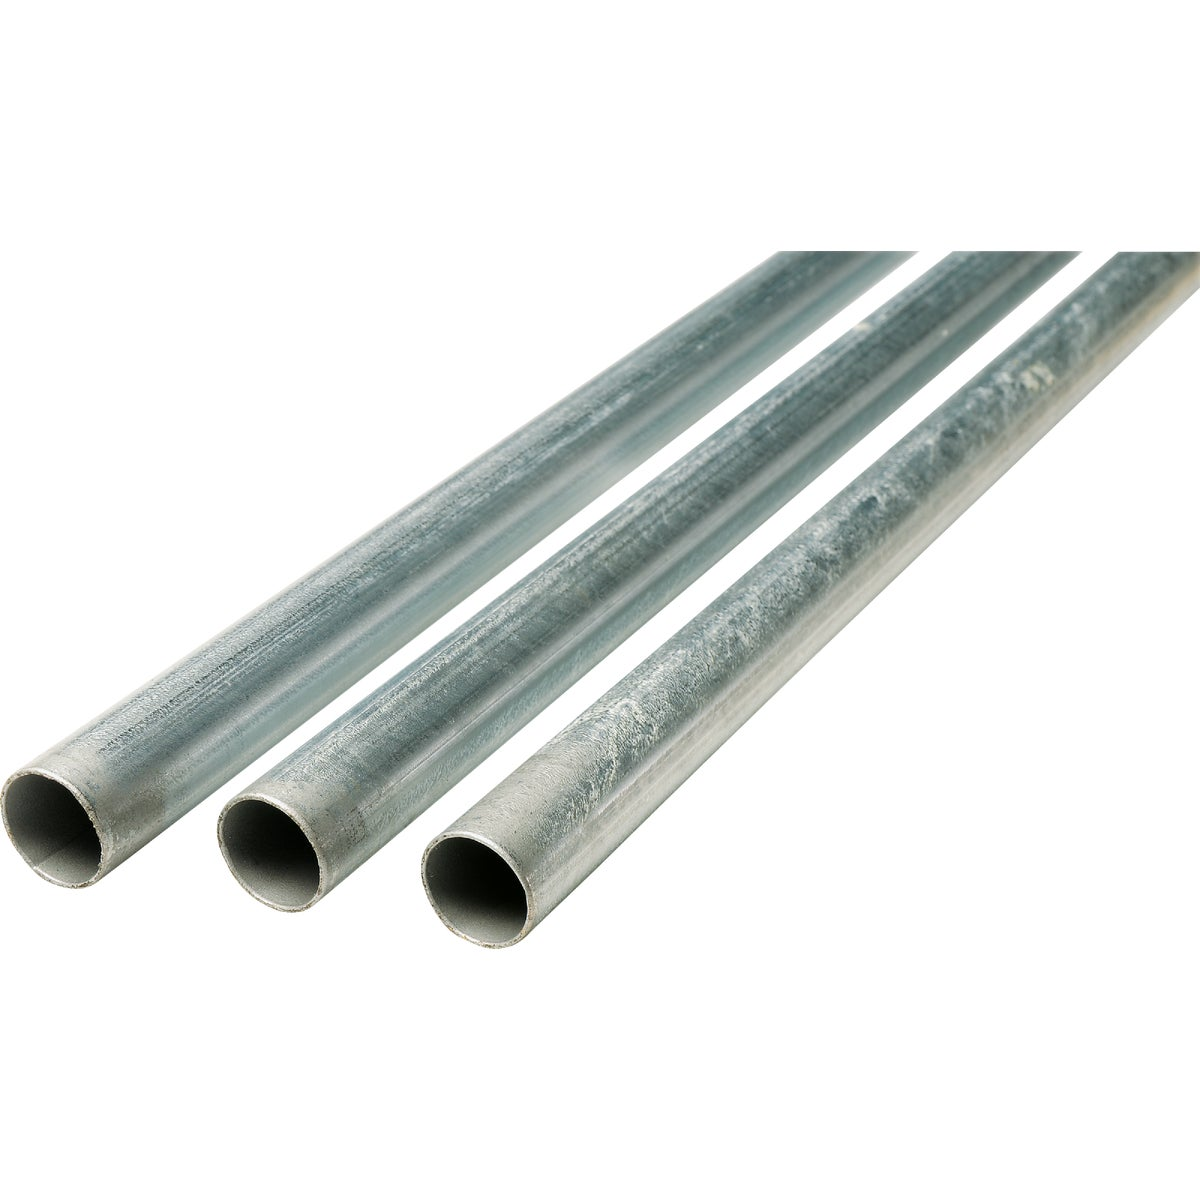 "1/2"" EMT CONDUIT - 101543 by Allied Tube  Atkore"